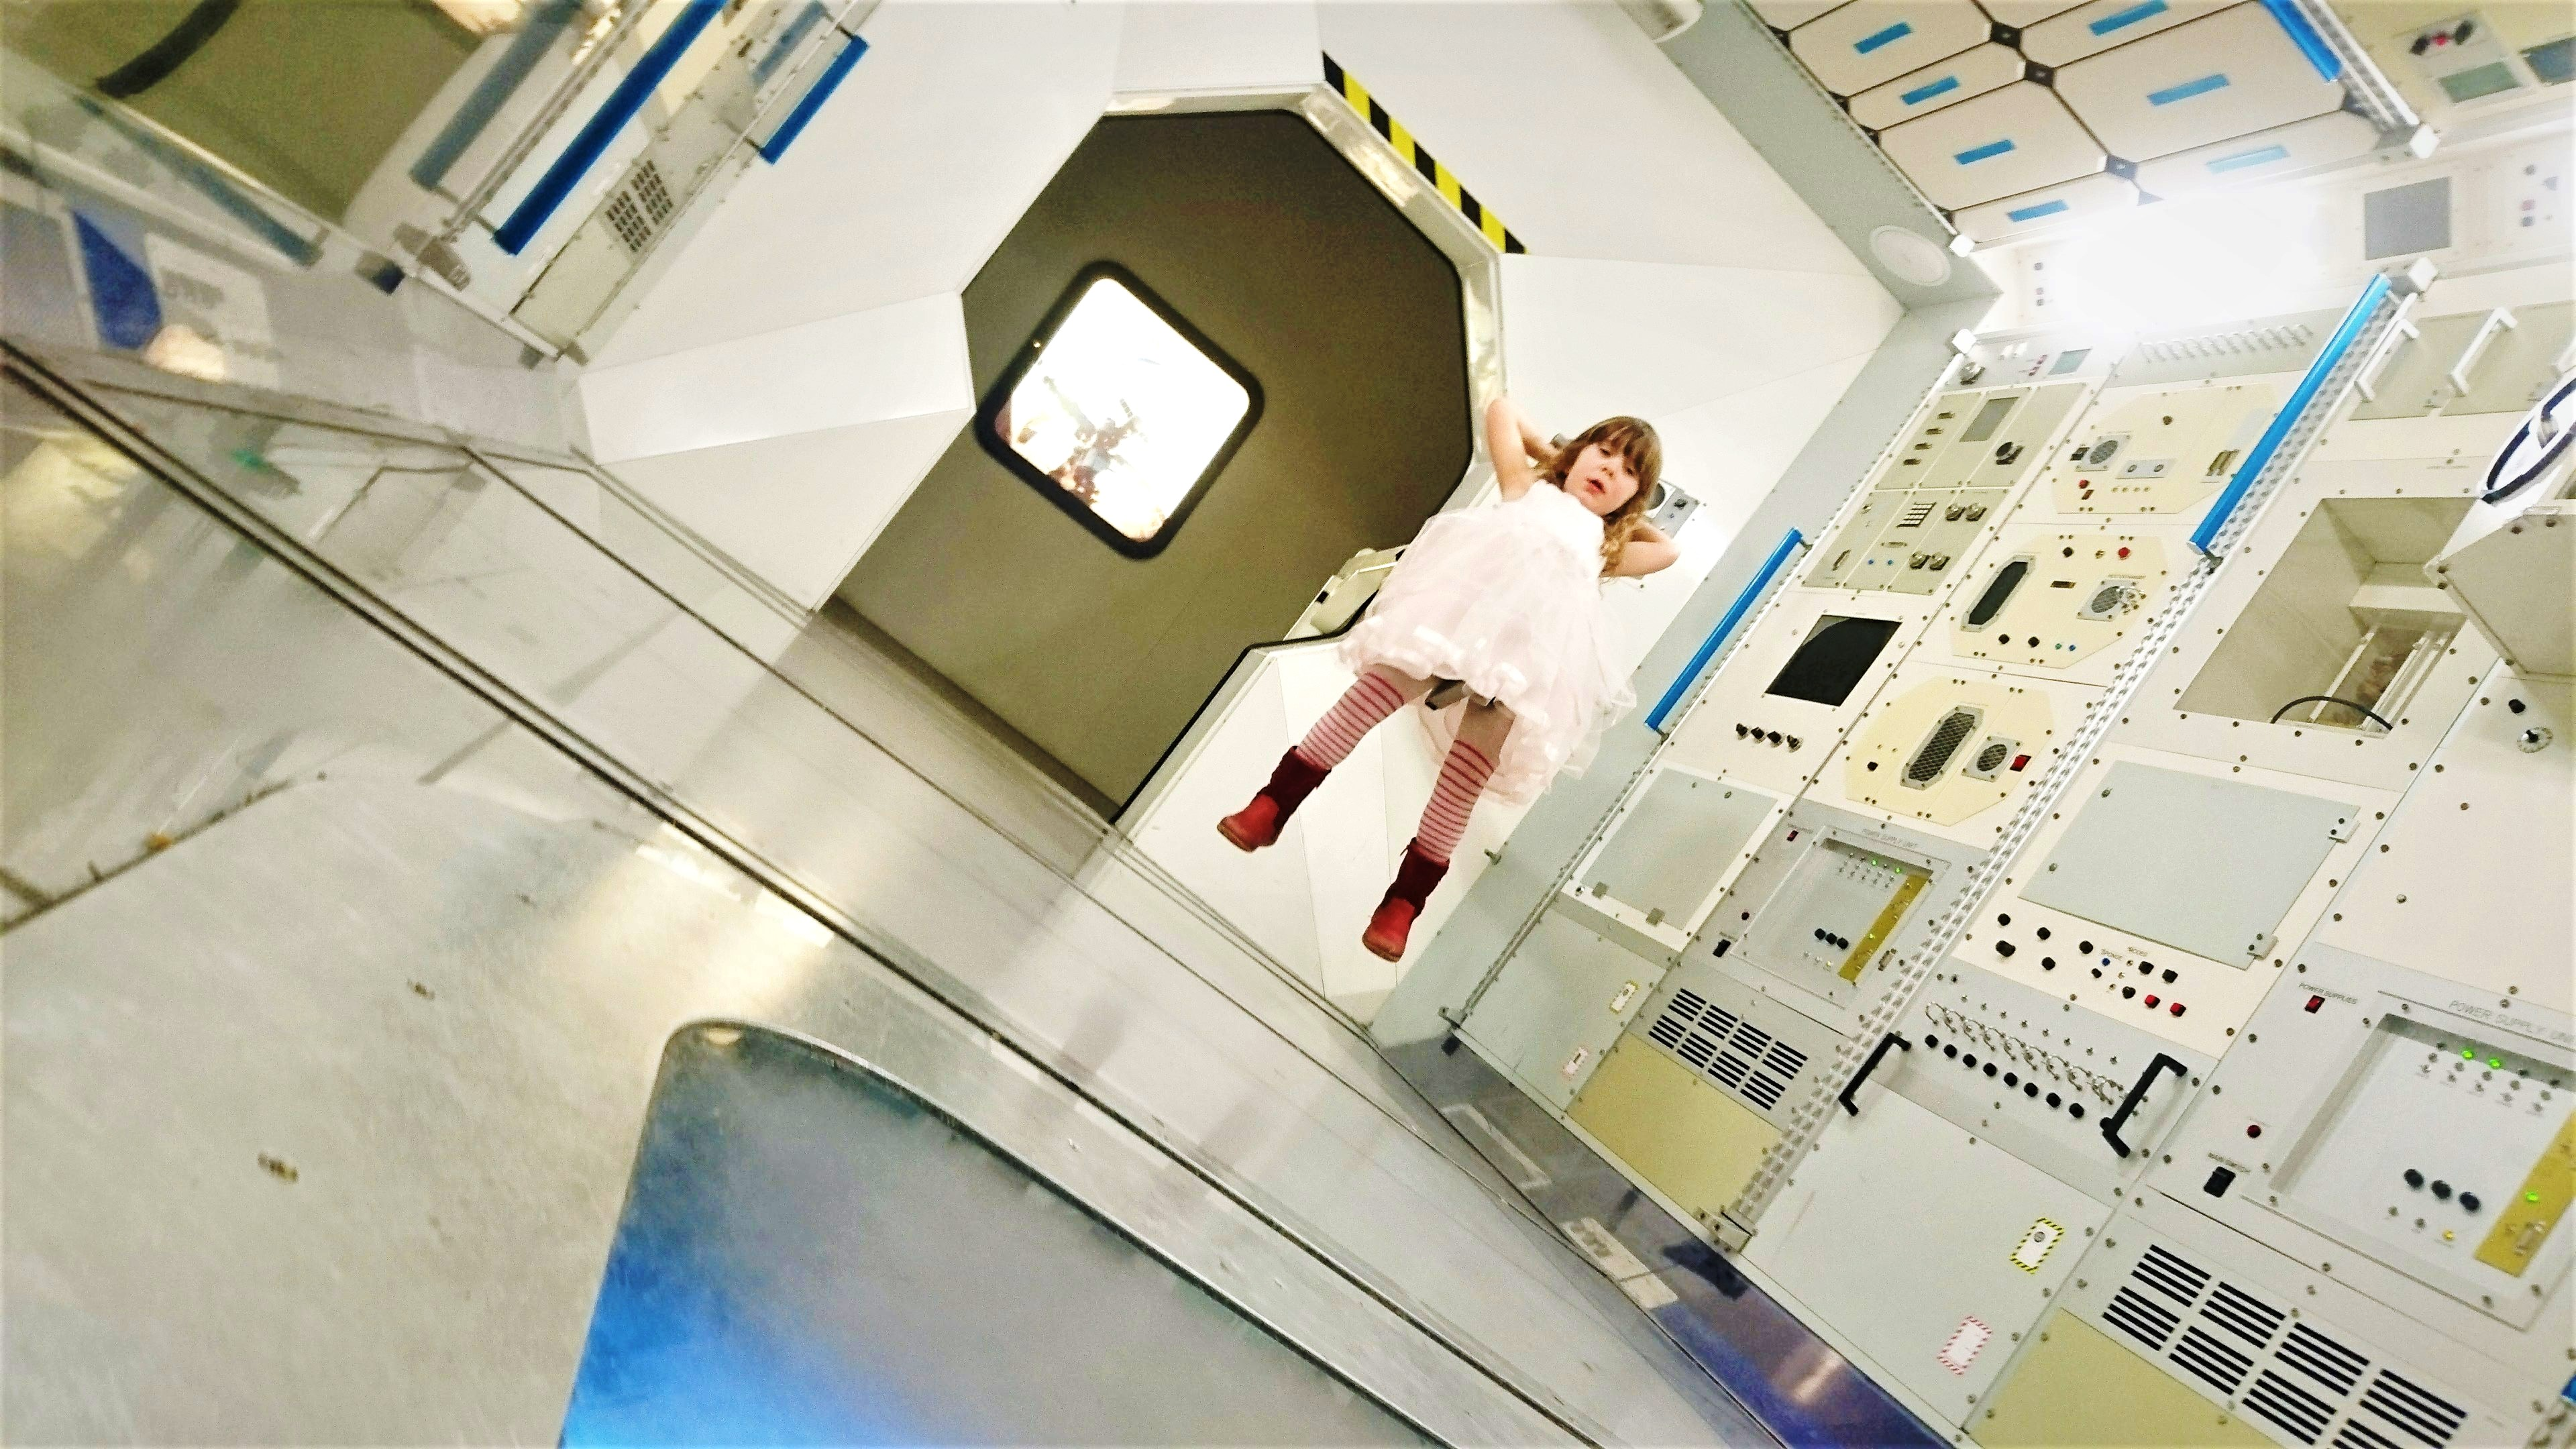 Annie in a Space Station